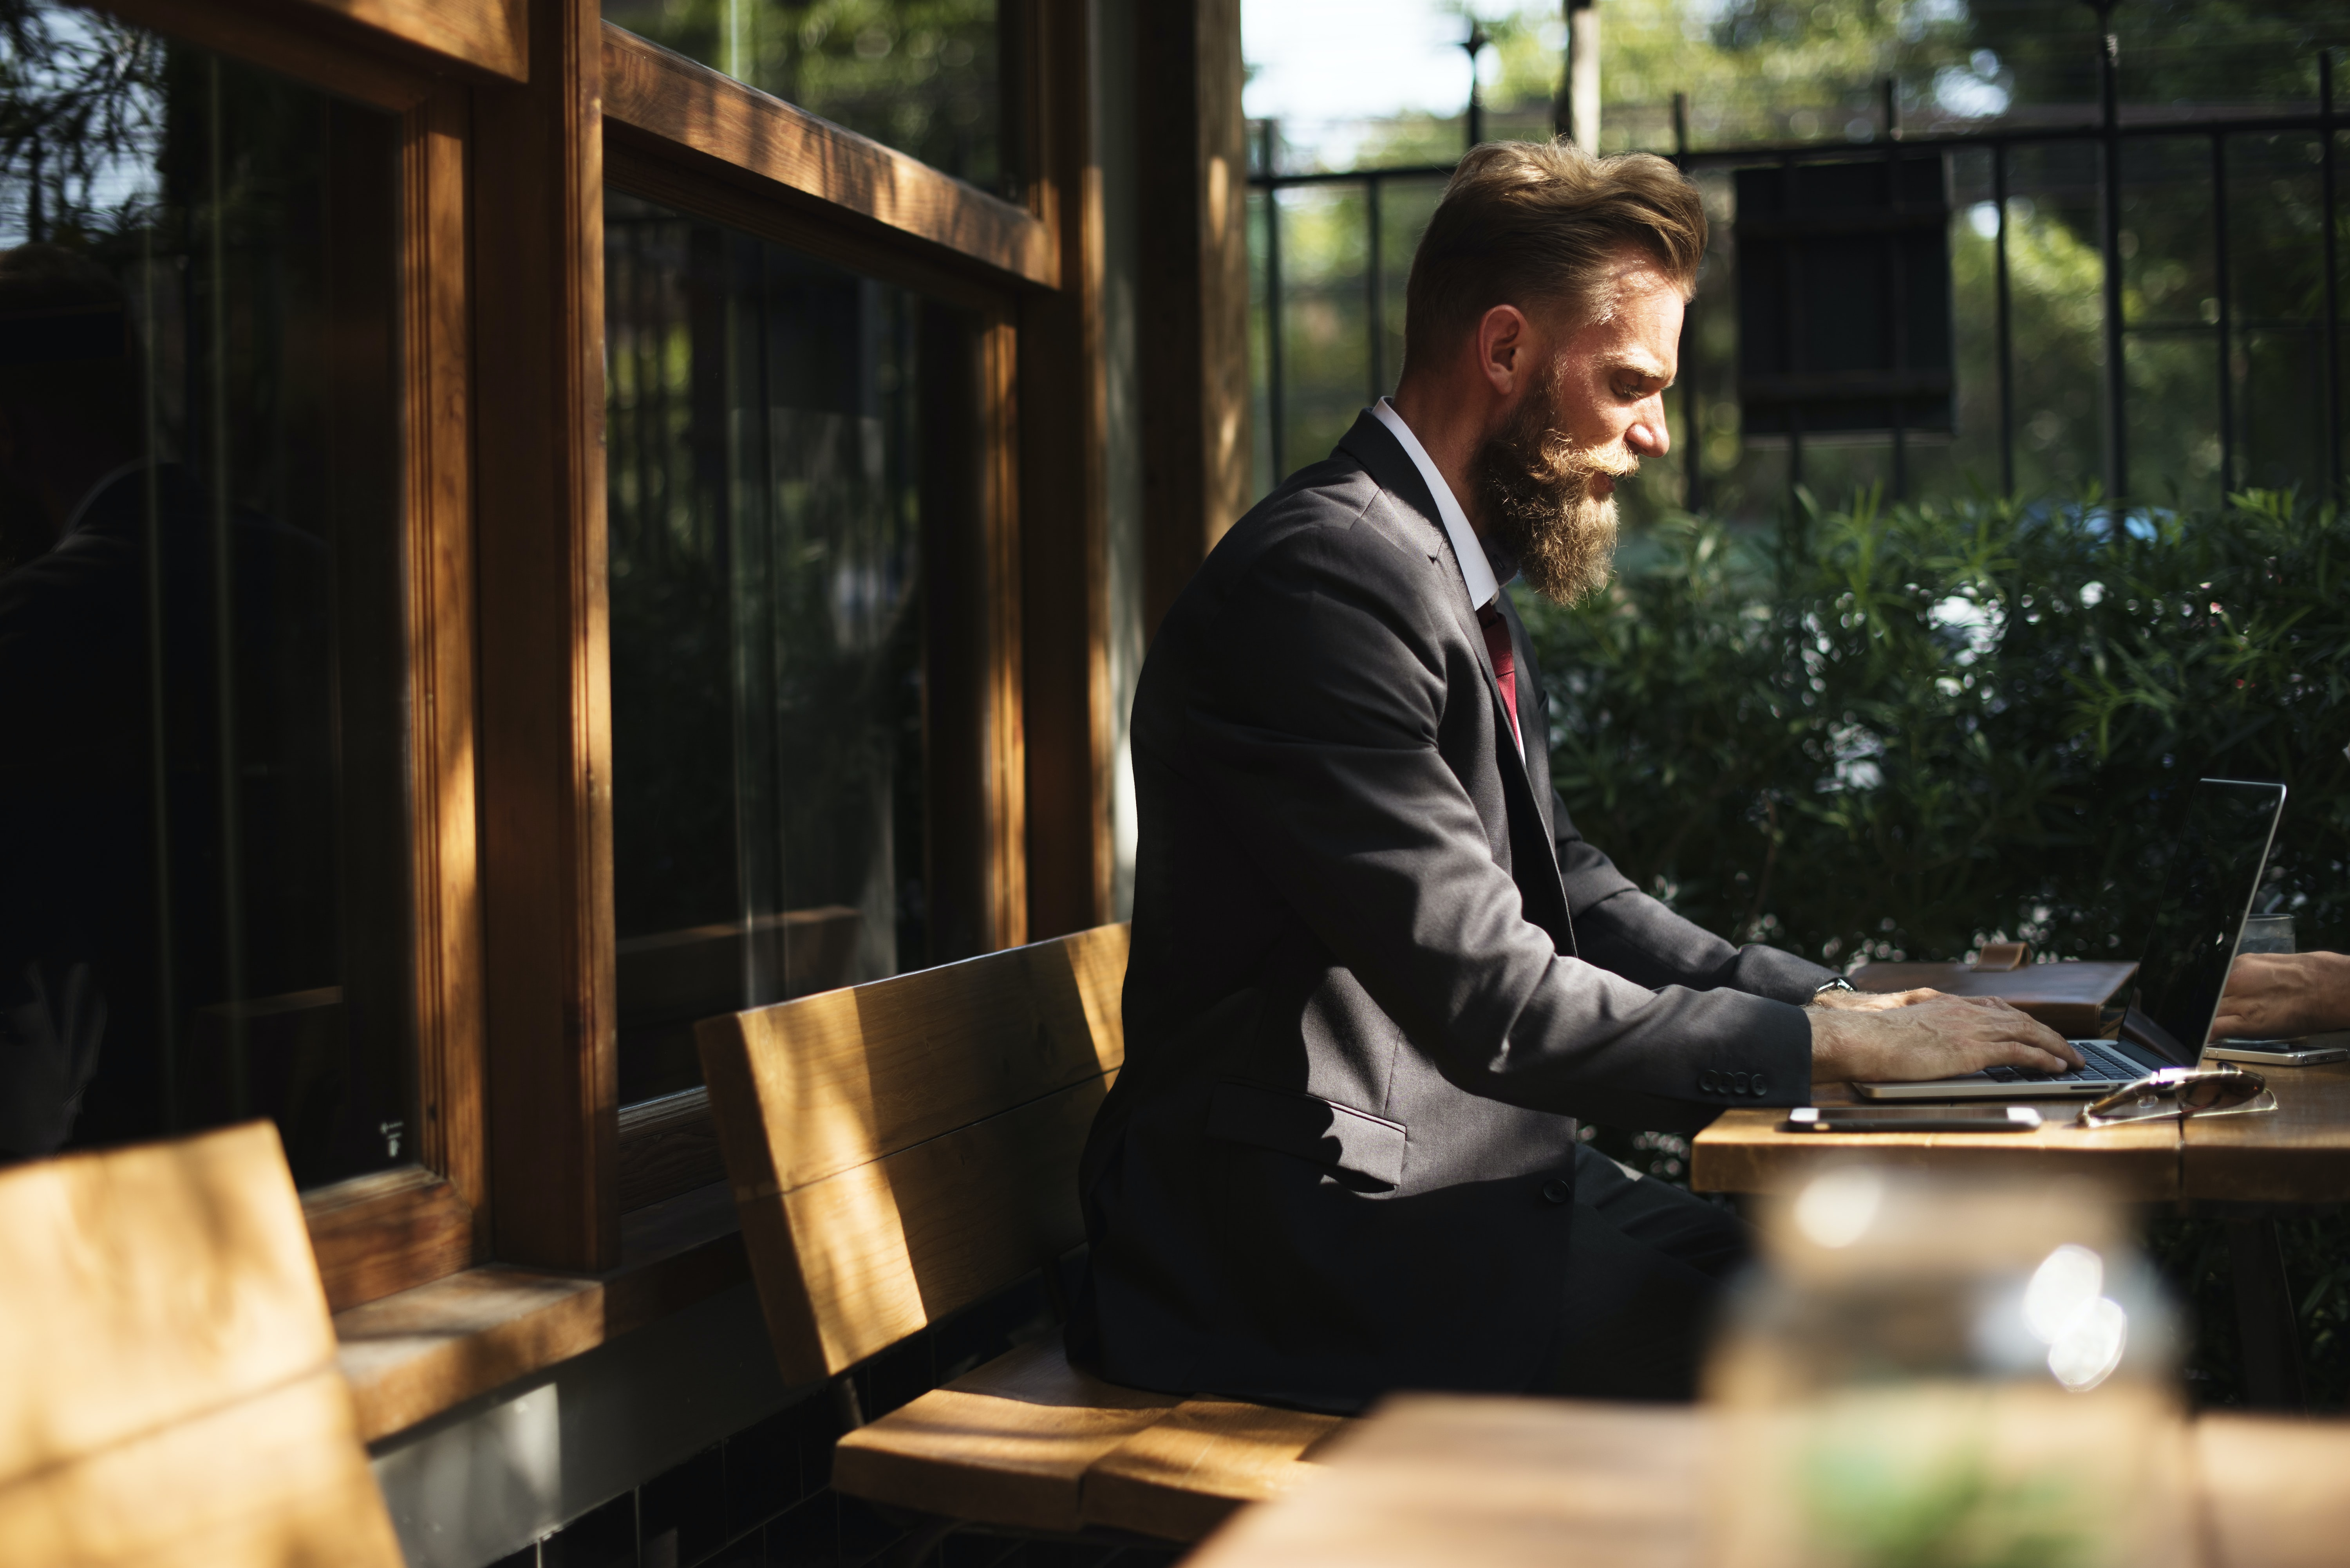 A bearded man wearing a suit sitting outside and working on his laptop at a patio table